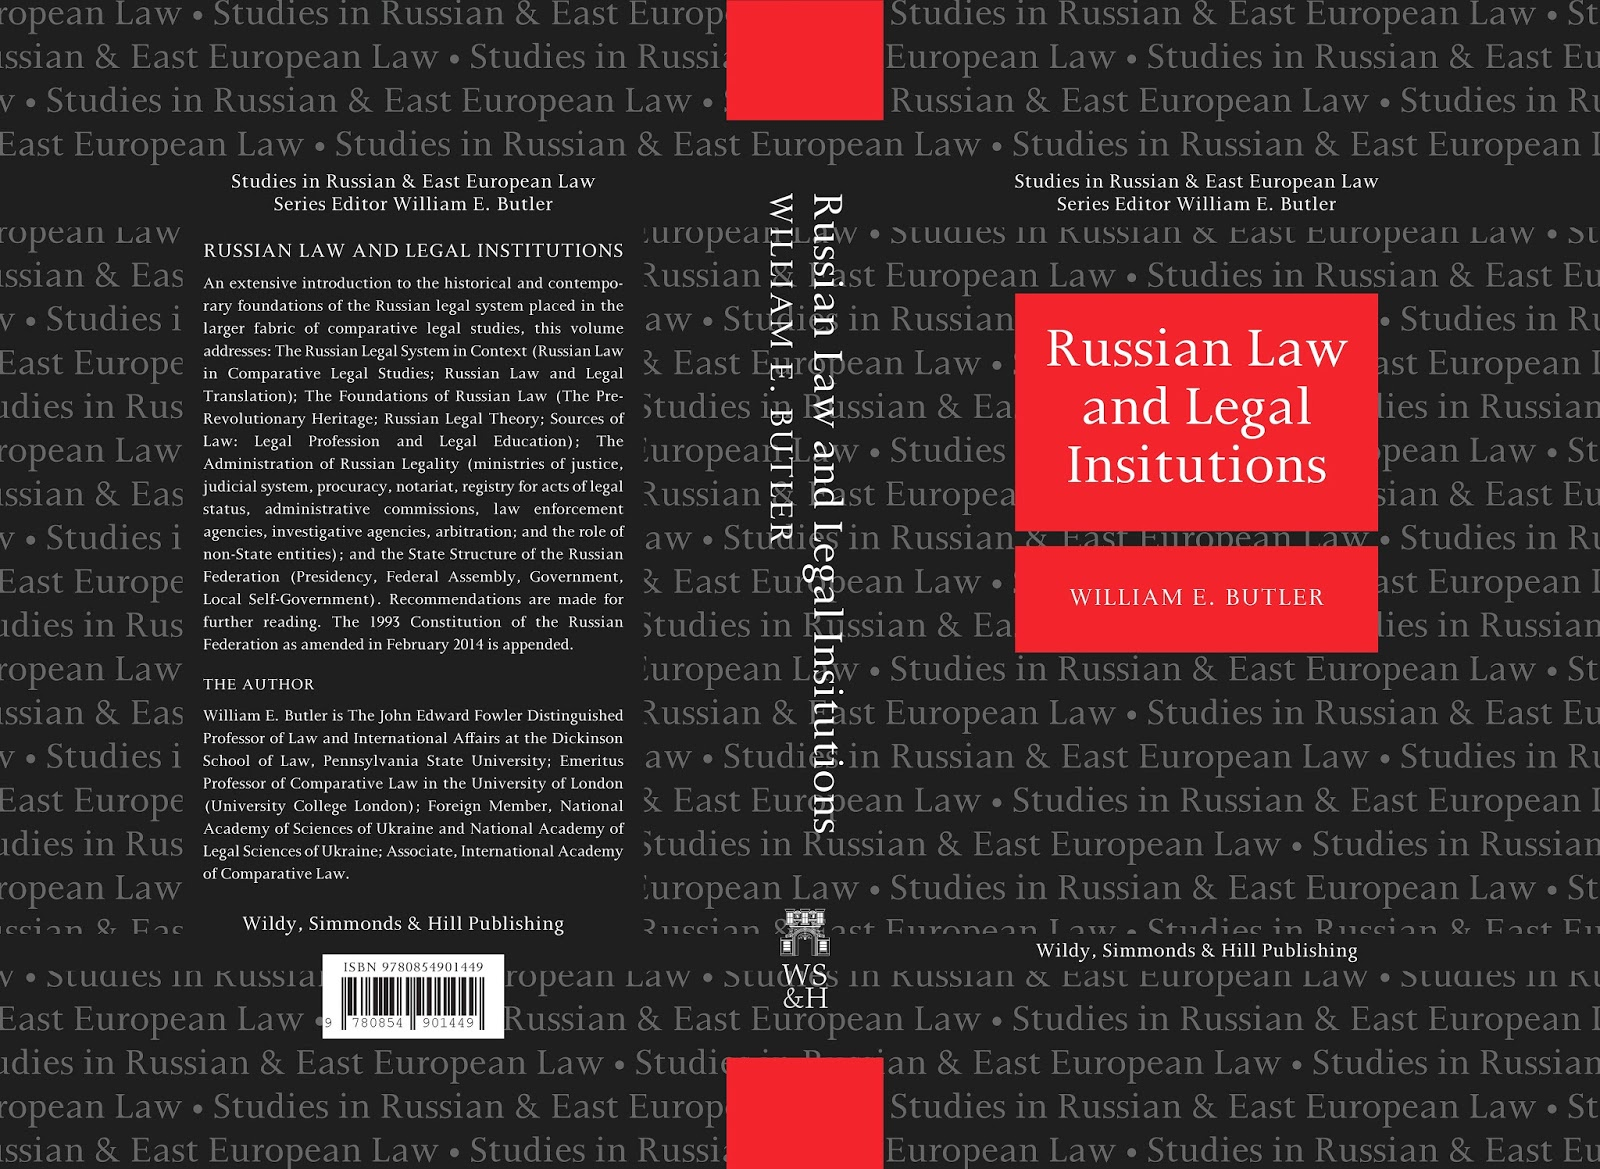 Books on Russian law